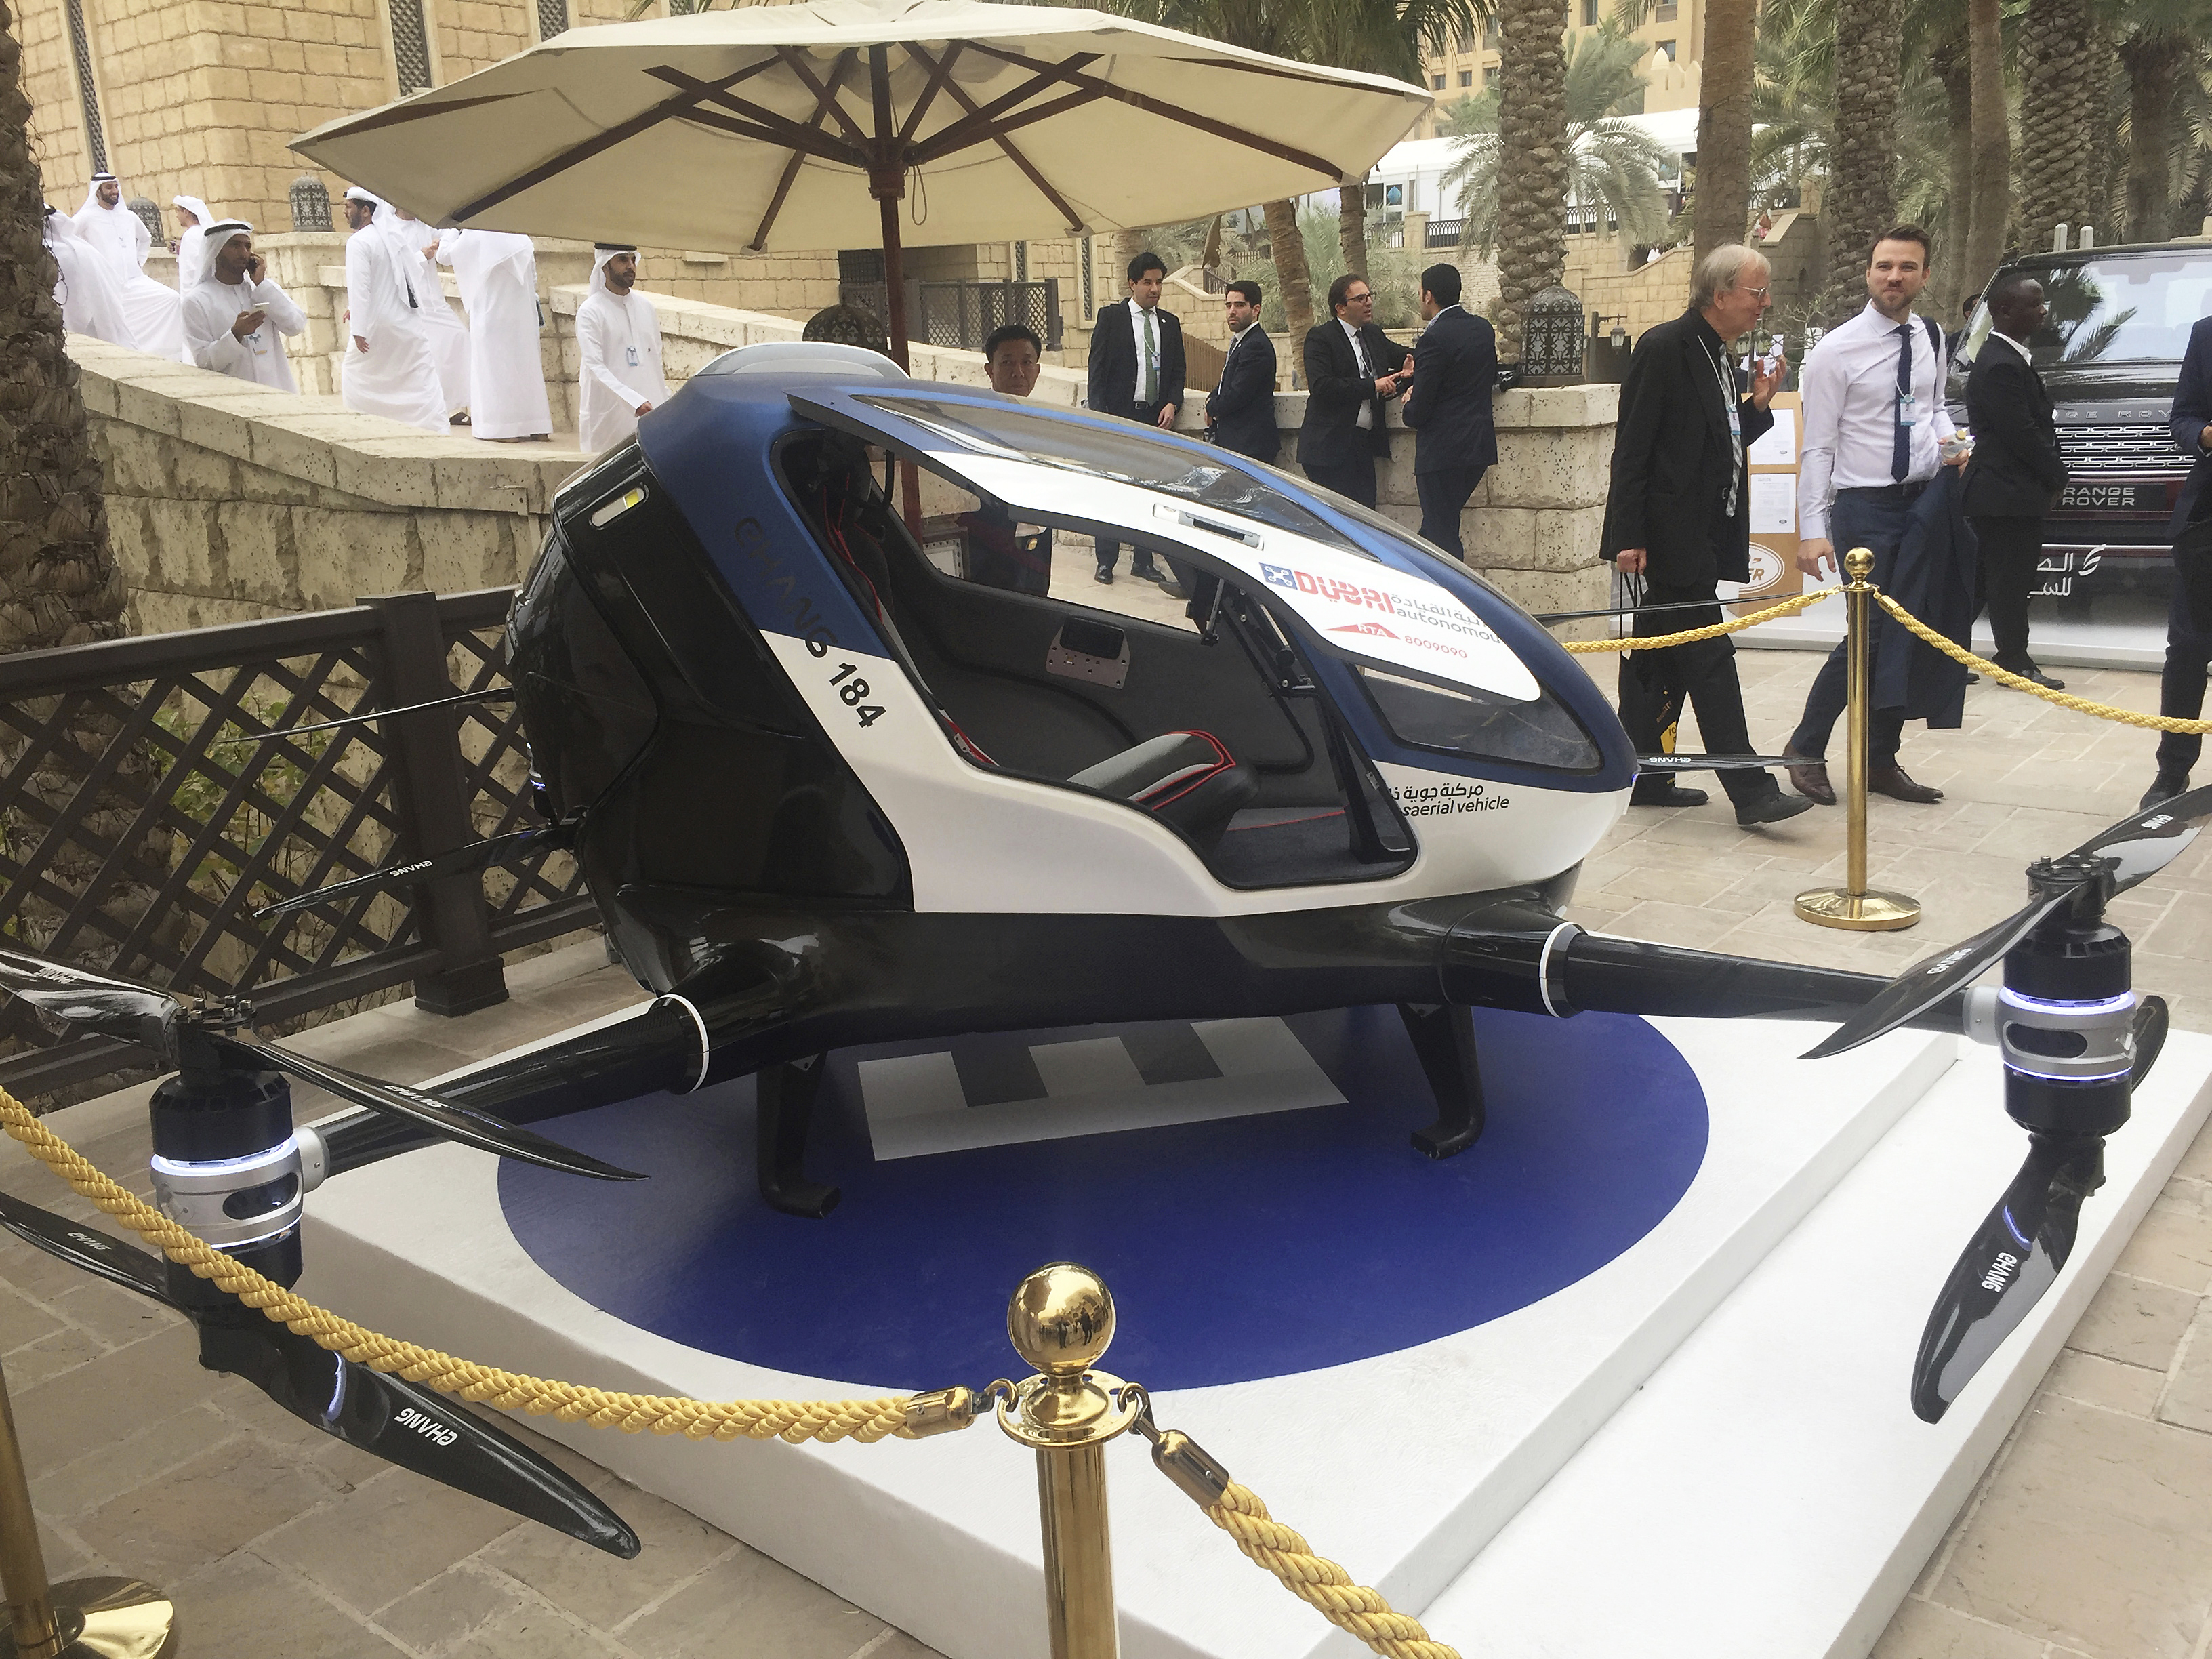 A model of EHang 184 and the next generation of Dubai Drone Taxi during the second day of the World Government Summit in Dubai, United Arab Emirates on Feb. 13, 2017. (AP Photo/Jon Gambrell)